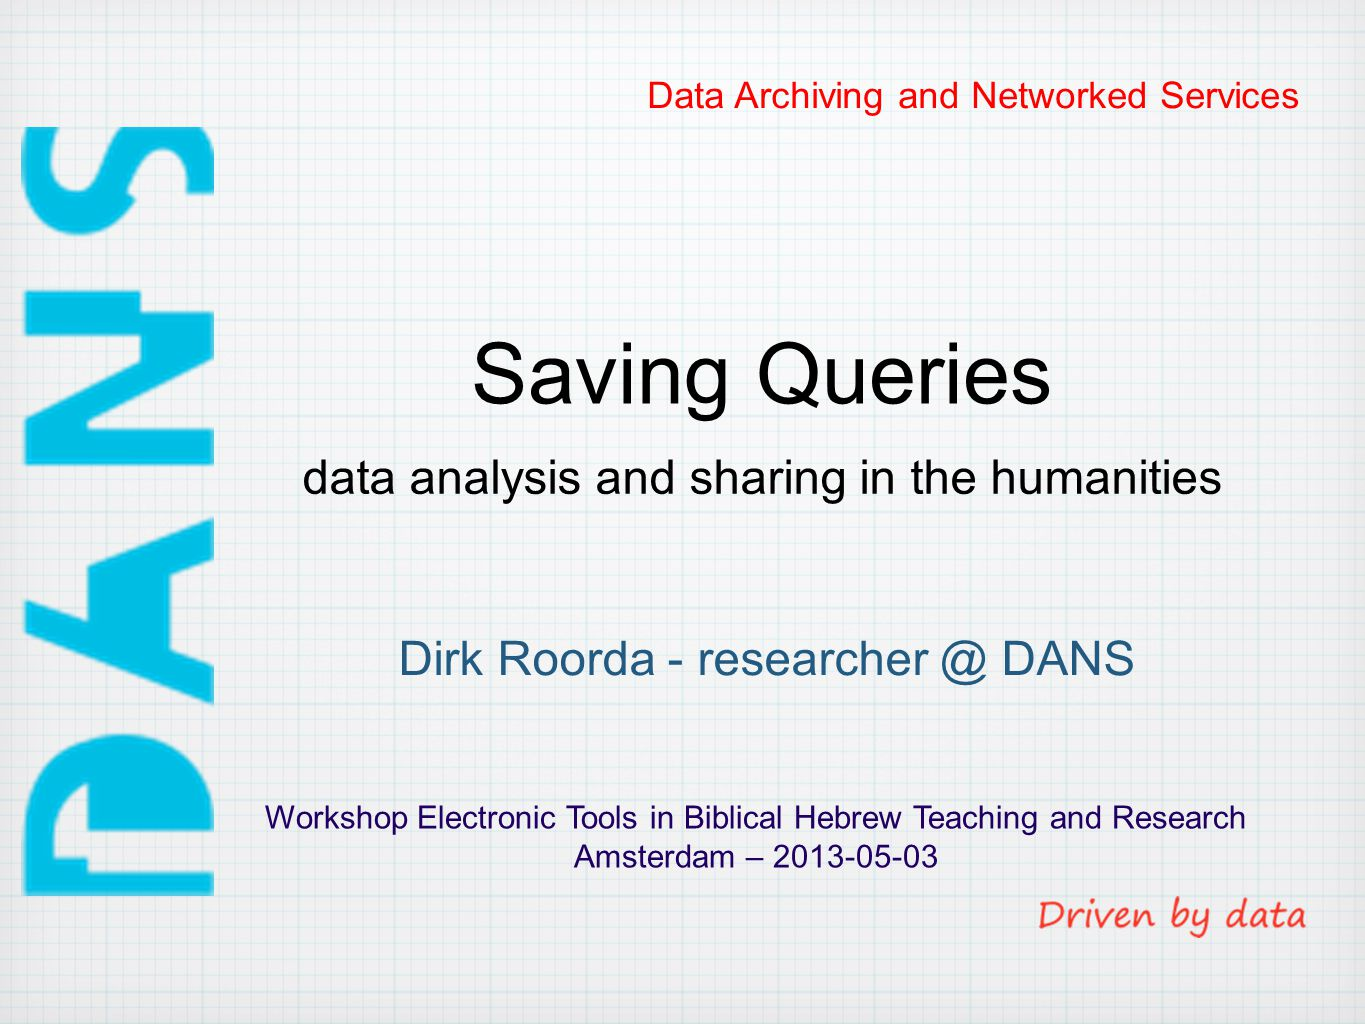 Data Archiving and Networked Services Saving Queries Workshop Electronic Tools in Biblical Hebrew Teaching and Research Amsterdam – 2013-05-03 Dirk Roorda - researcher @ DANS data analysis and sharing in the humanities